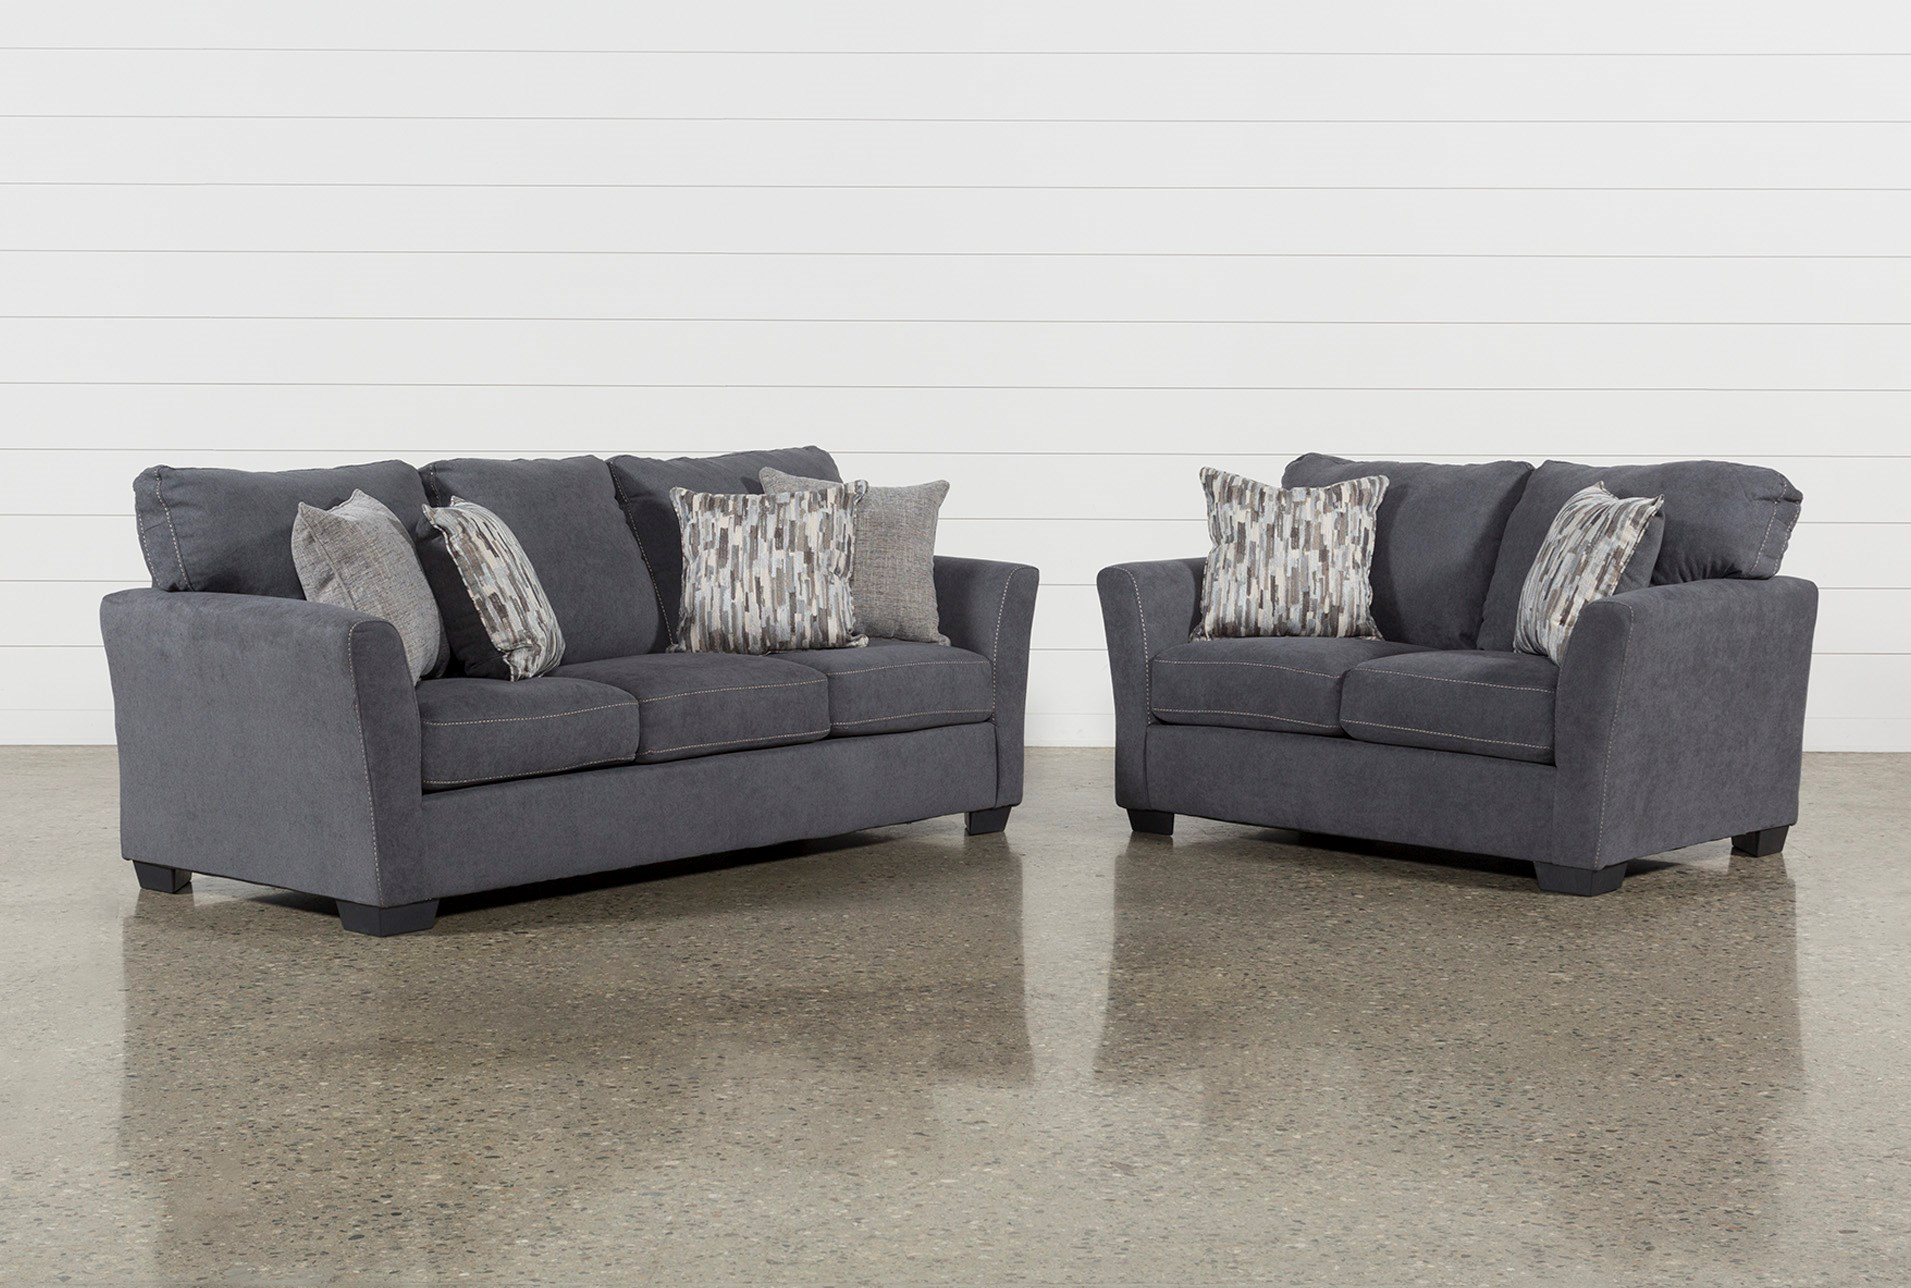 living spaces living room sets sectional lennon steel piece living room set 360 spaces